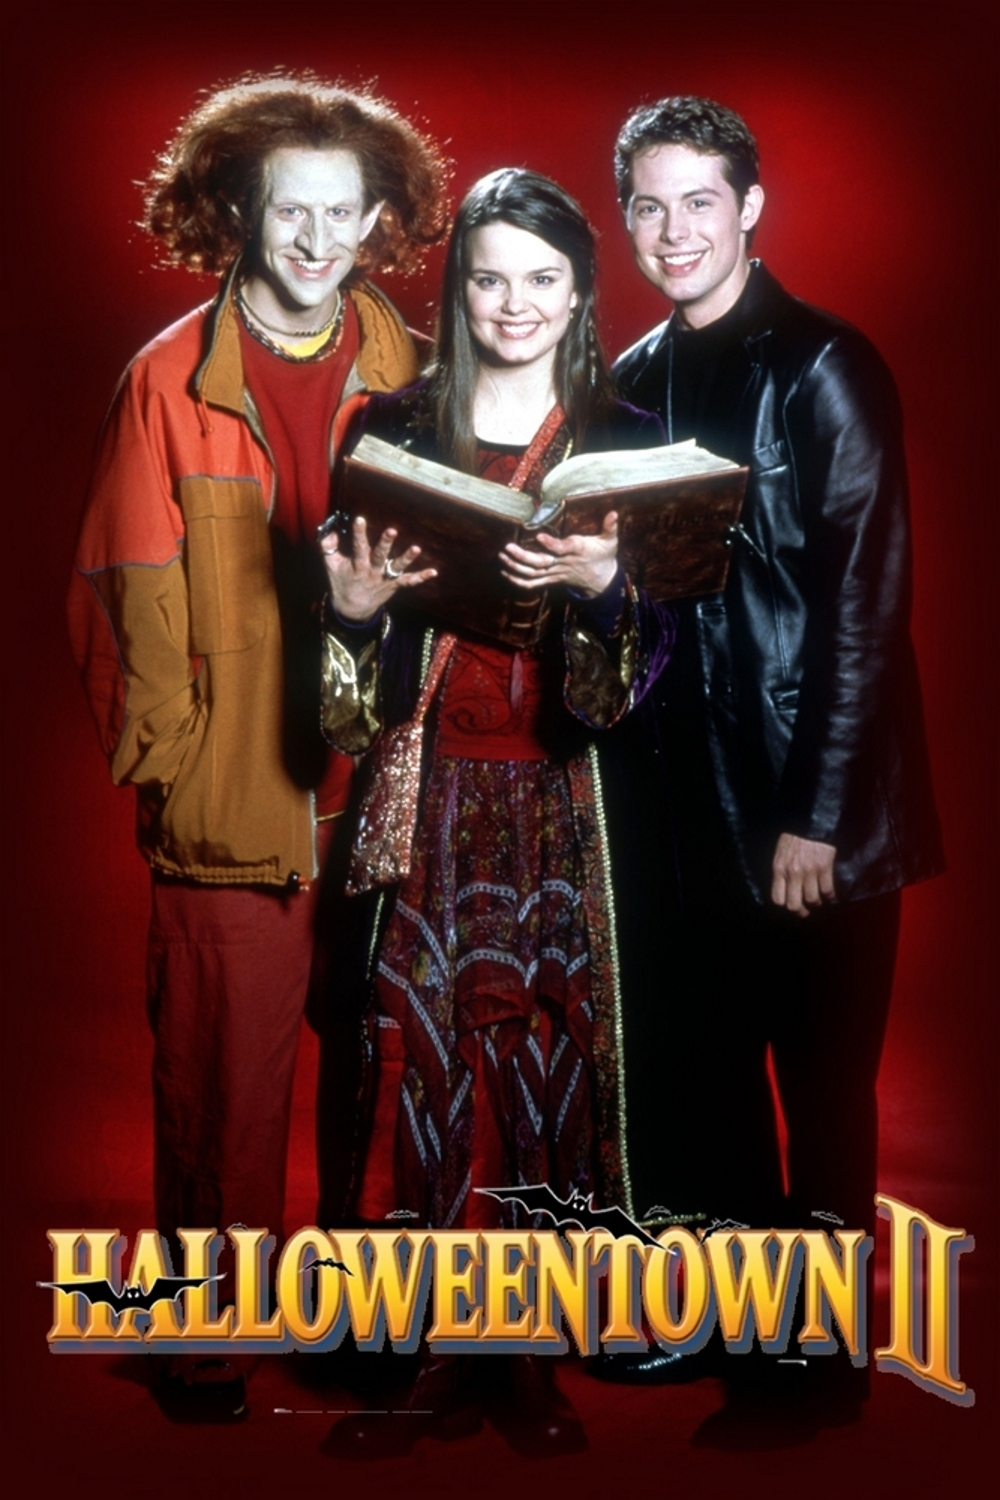 Halloweentown II: Kalabar's Revenge (TV Movie 2001) - Quotes - IMDb